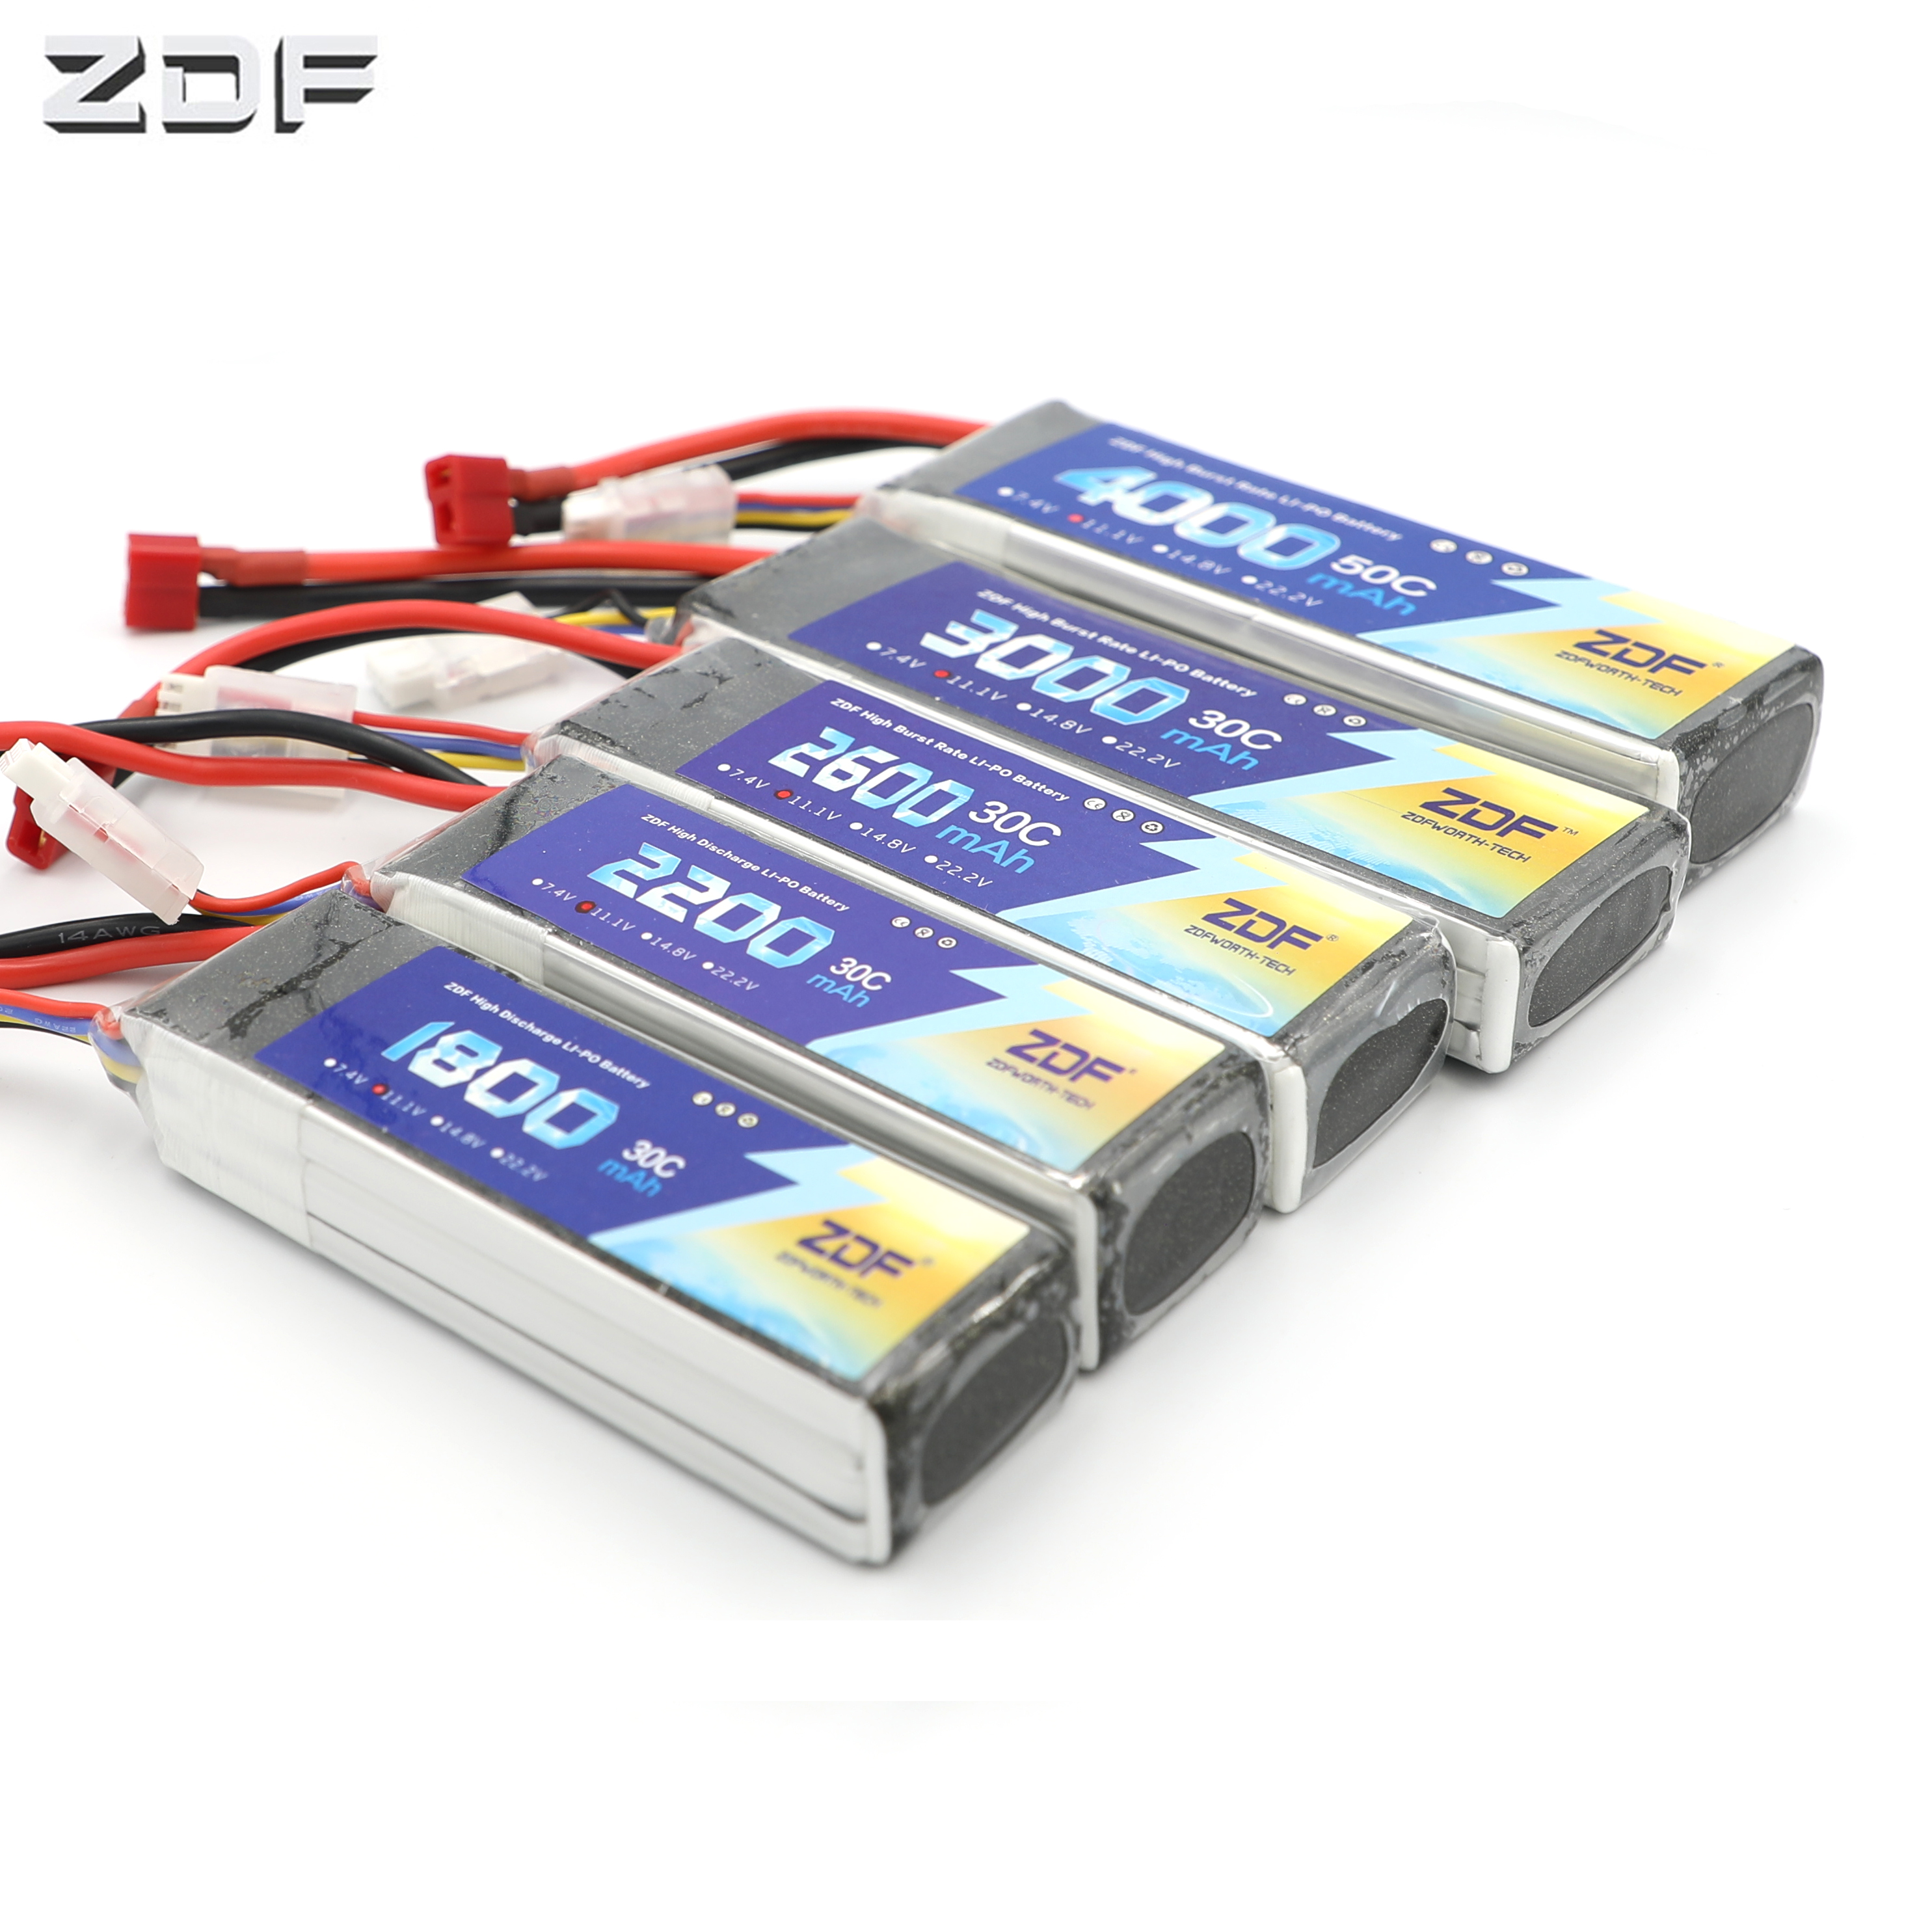 <font><b>3S</b></font> RC <font><b>LiPo</b></font> <font><b>battery</b></font> <font><b>3S</b></font> 11.1V 1800mAh 2200mAh 2600mAh 3000mAh 4000mAh 5000mAh <font><b>6000mAh</b></font> 30C 50C For RC Quadrotor Helicopter Drone image